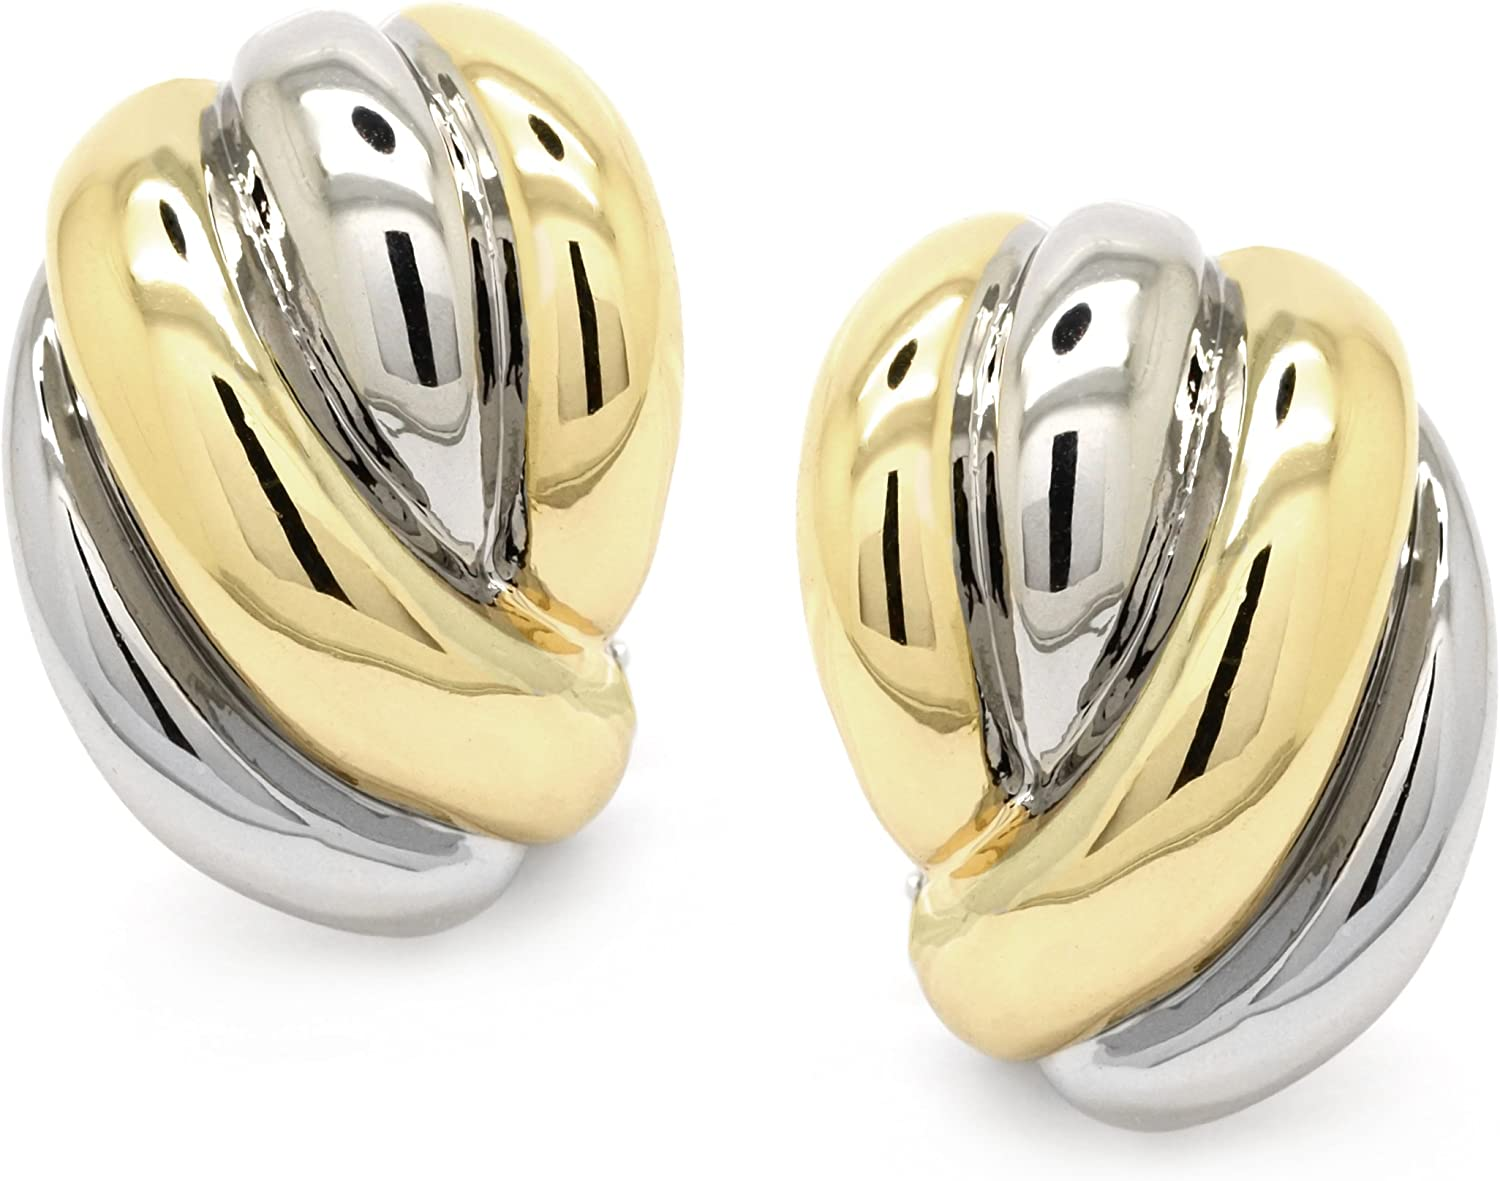 Vintage Woven Two Tone Clip On Earrings Gold Plated Classic Women Fashion